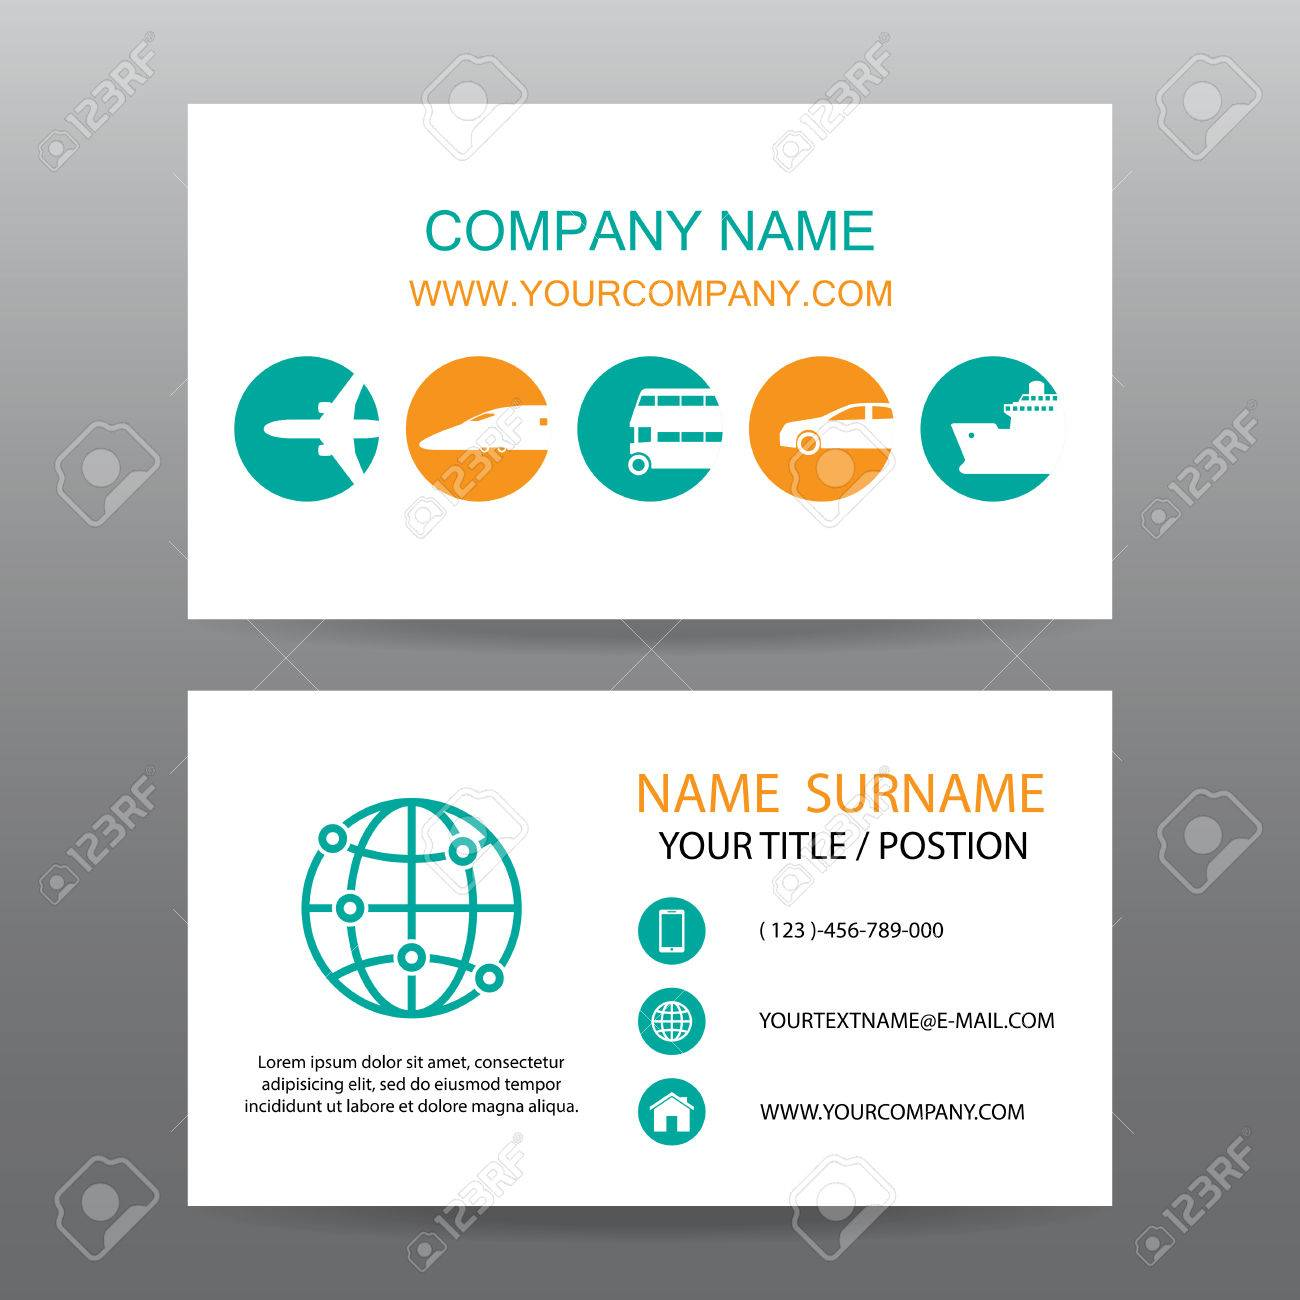 Business Card Vector Background,tour Companies Royalty Free ...